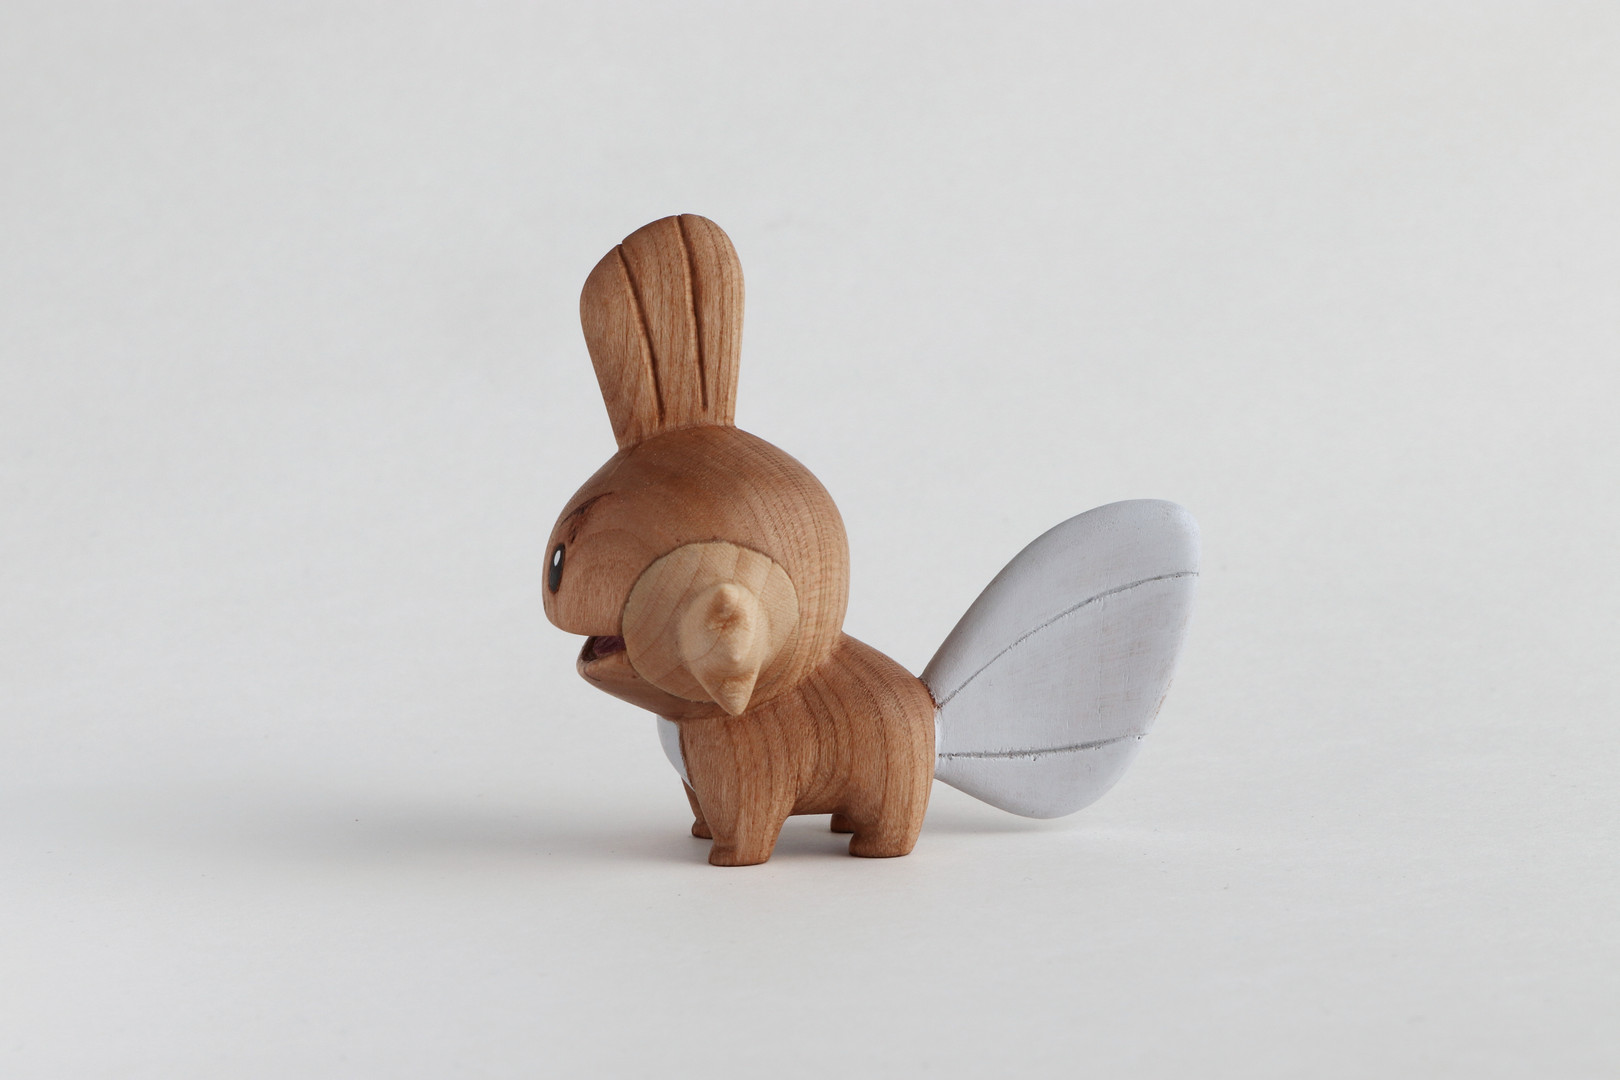 Mudkip wood carving wooden pokemon hand carved figure